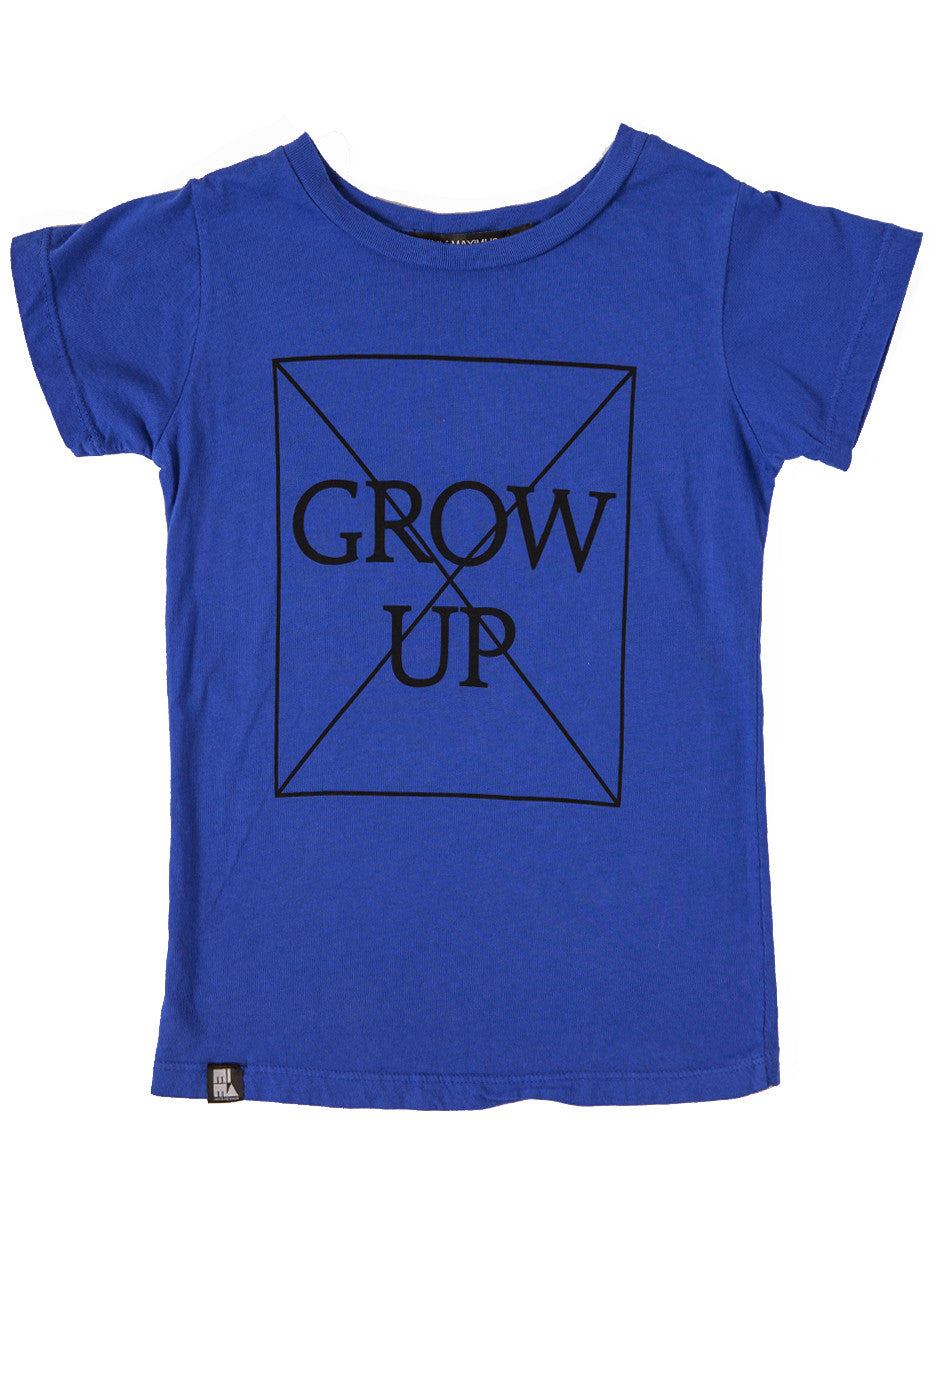 MINI AND MAXIMUS DON'T GROW UP TEE BLUE-TOP-MINI AND MAXIMUS-Billie & Axel, Montreal, Canada & USA